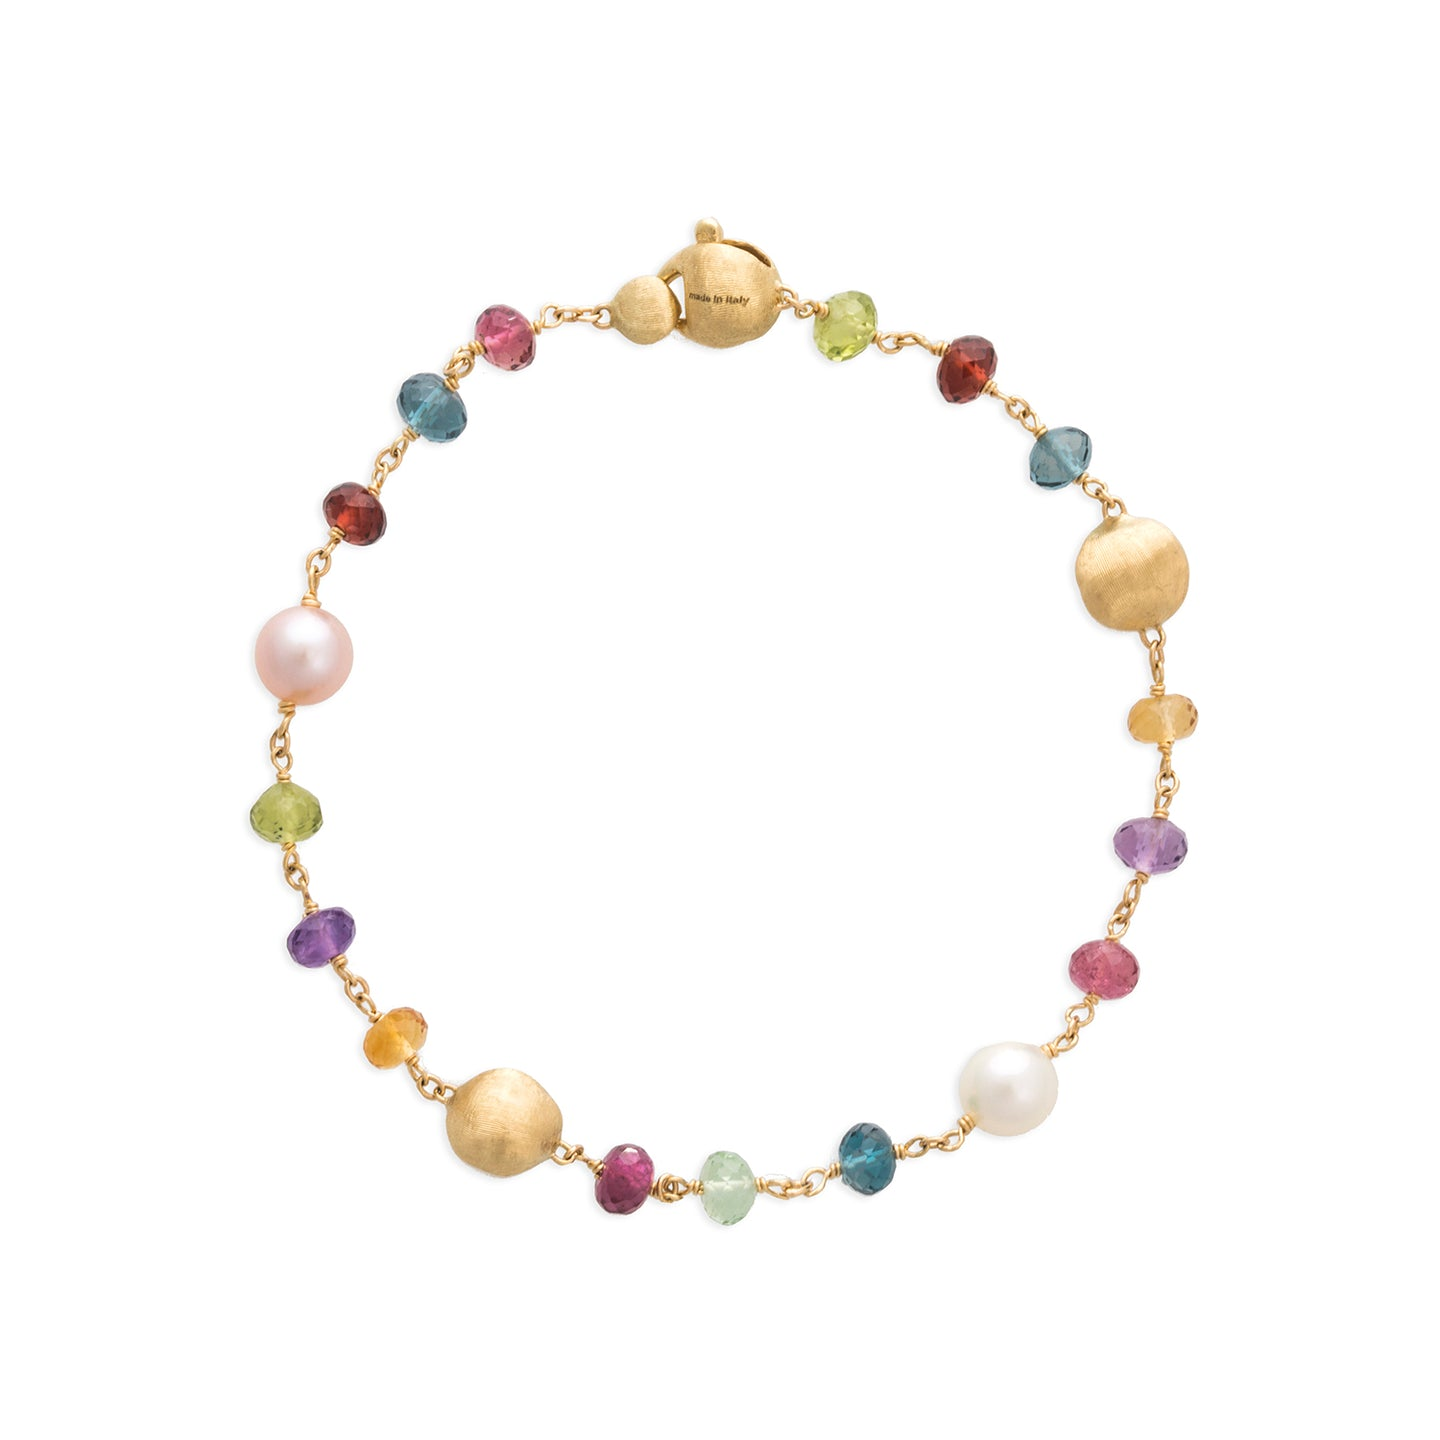 Marco Bicego Africa 18K Yellow Gold Multi-Colored Gemstone and Freshwater Pearl Station Bracelet